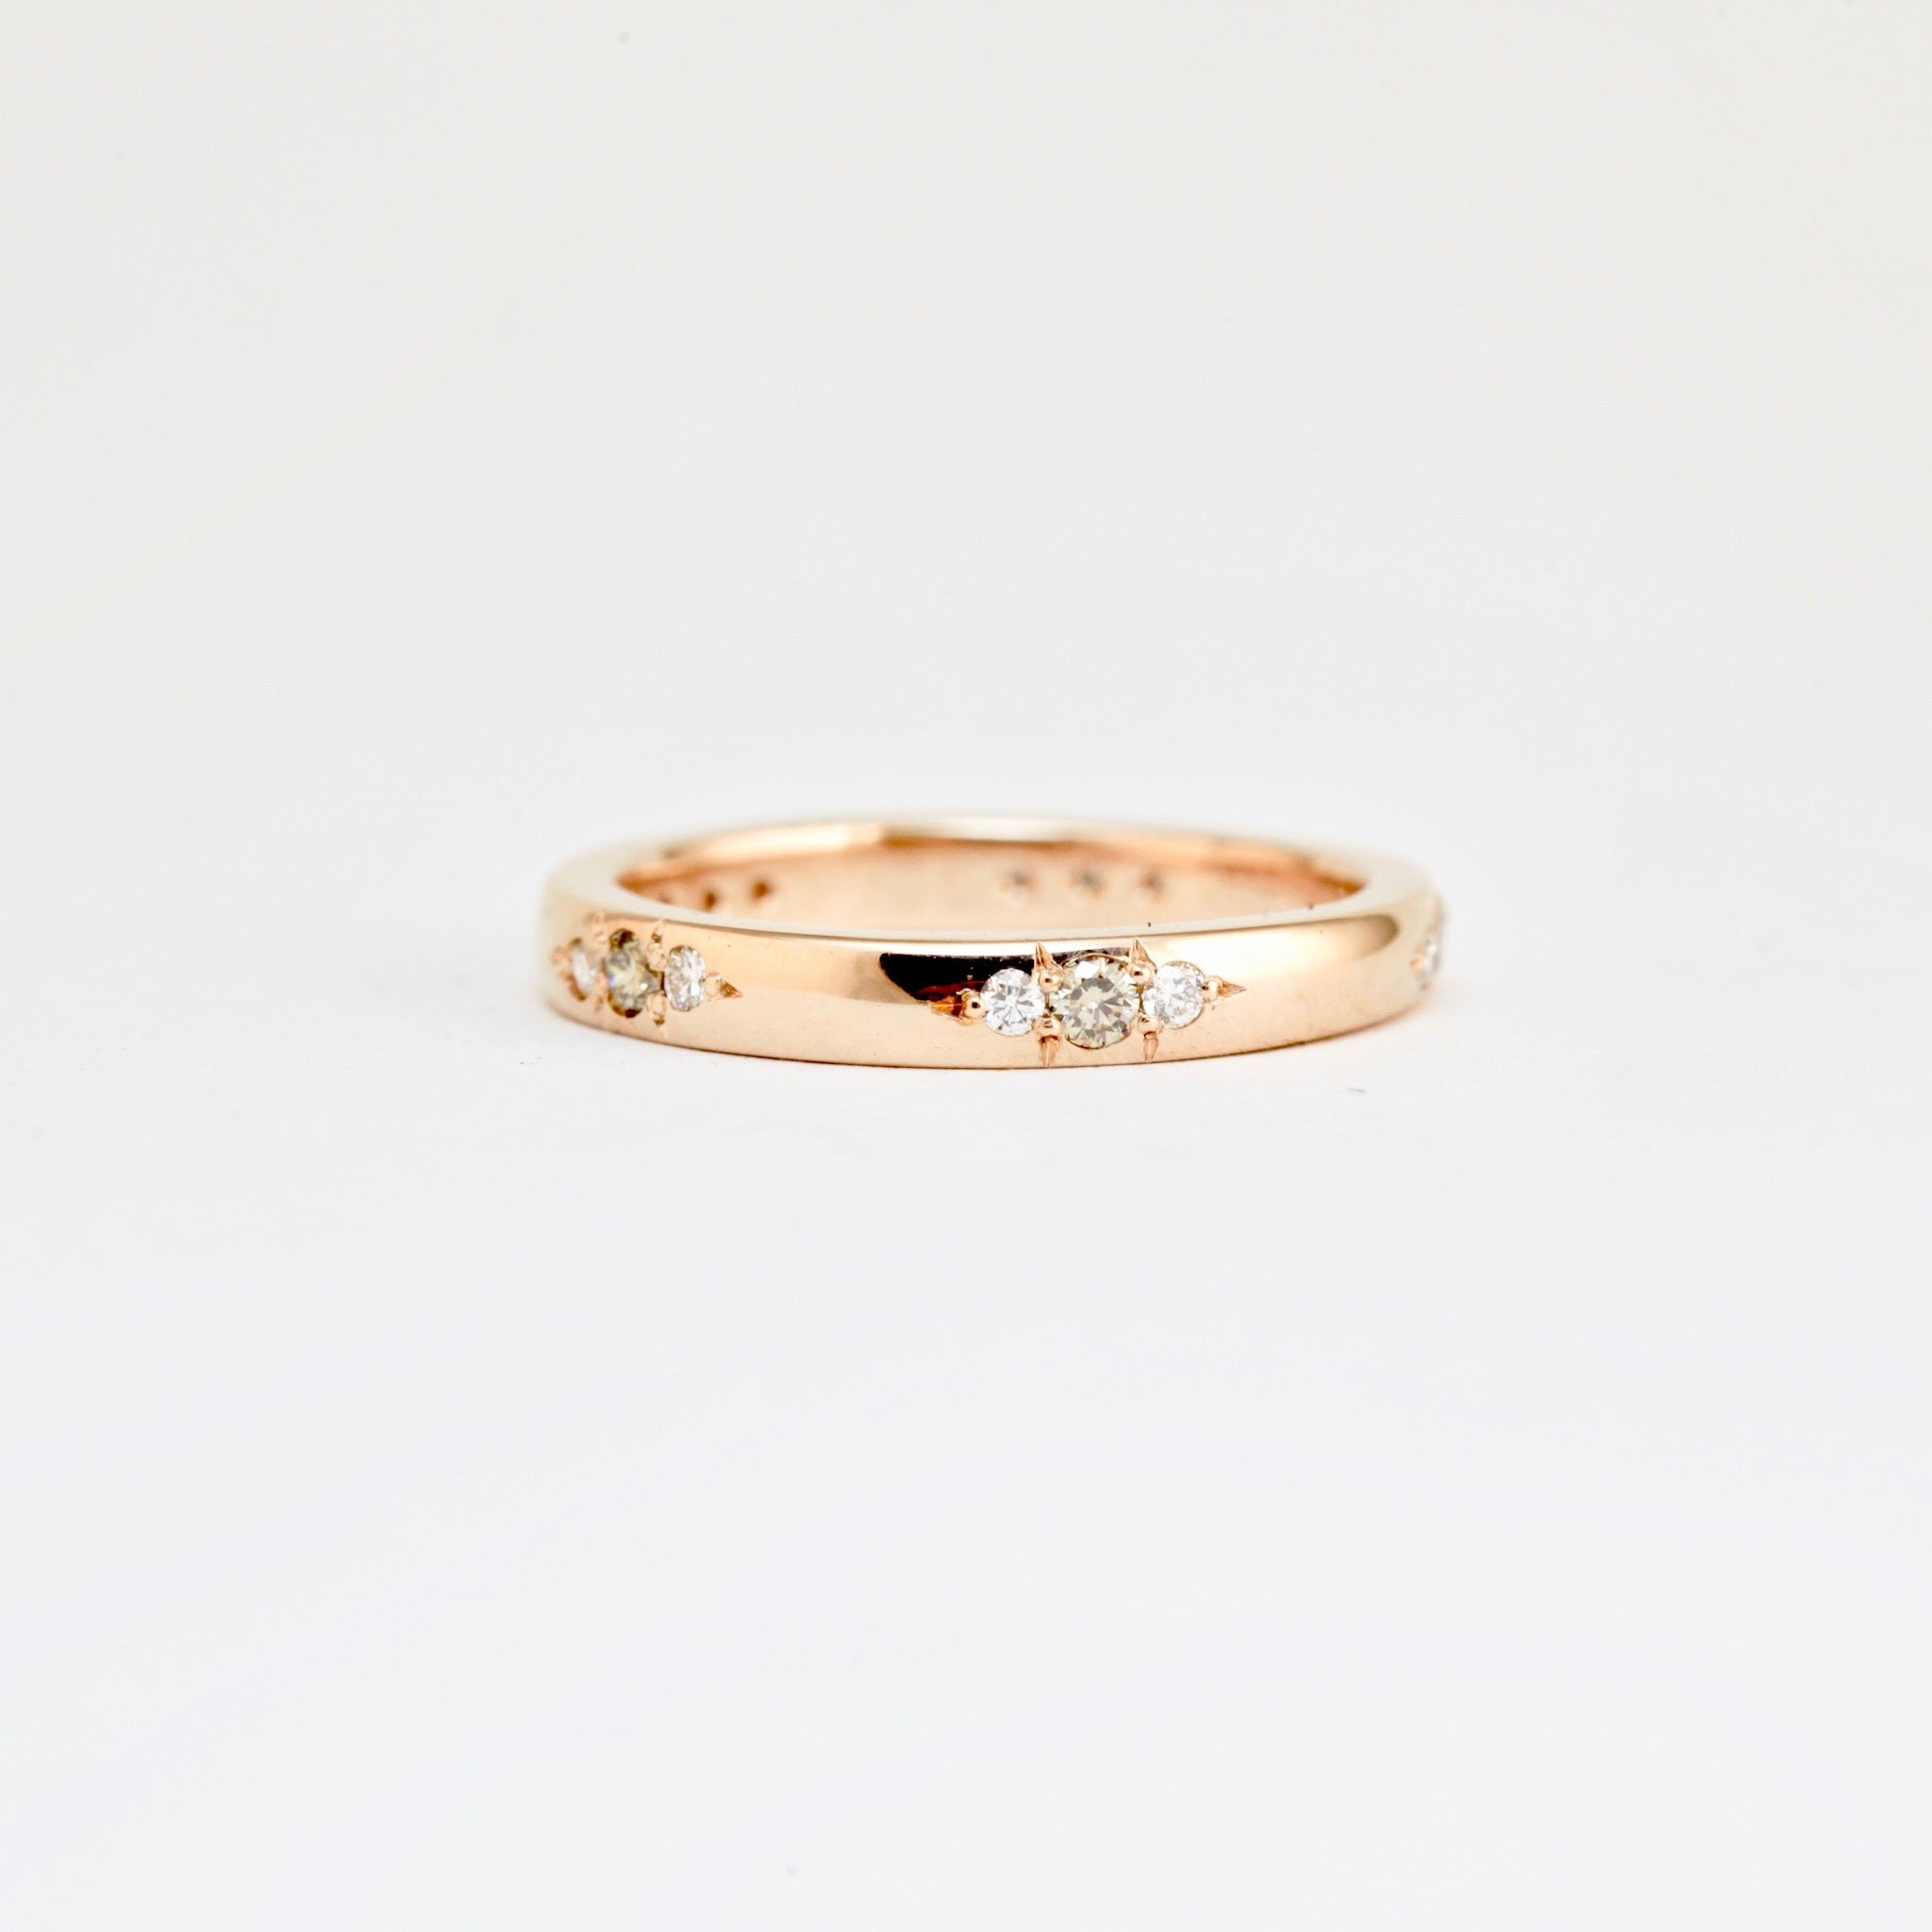 Champagne and white Diamond 18ct rose gold wedding band, Custom Bespoke Handmade.